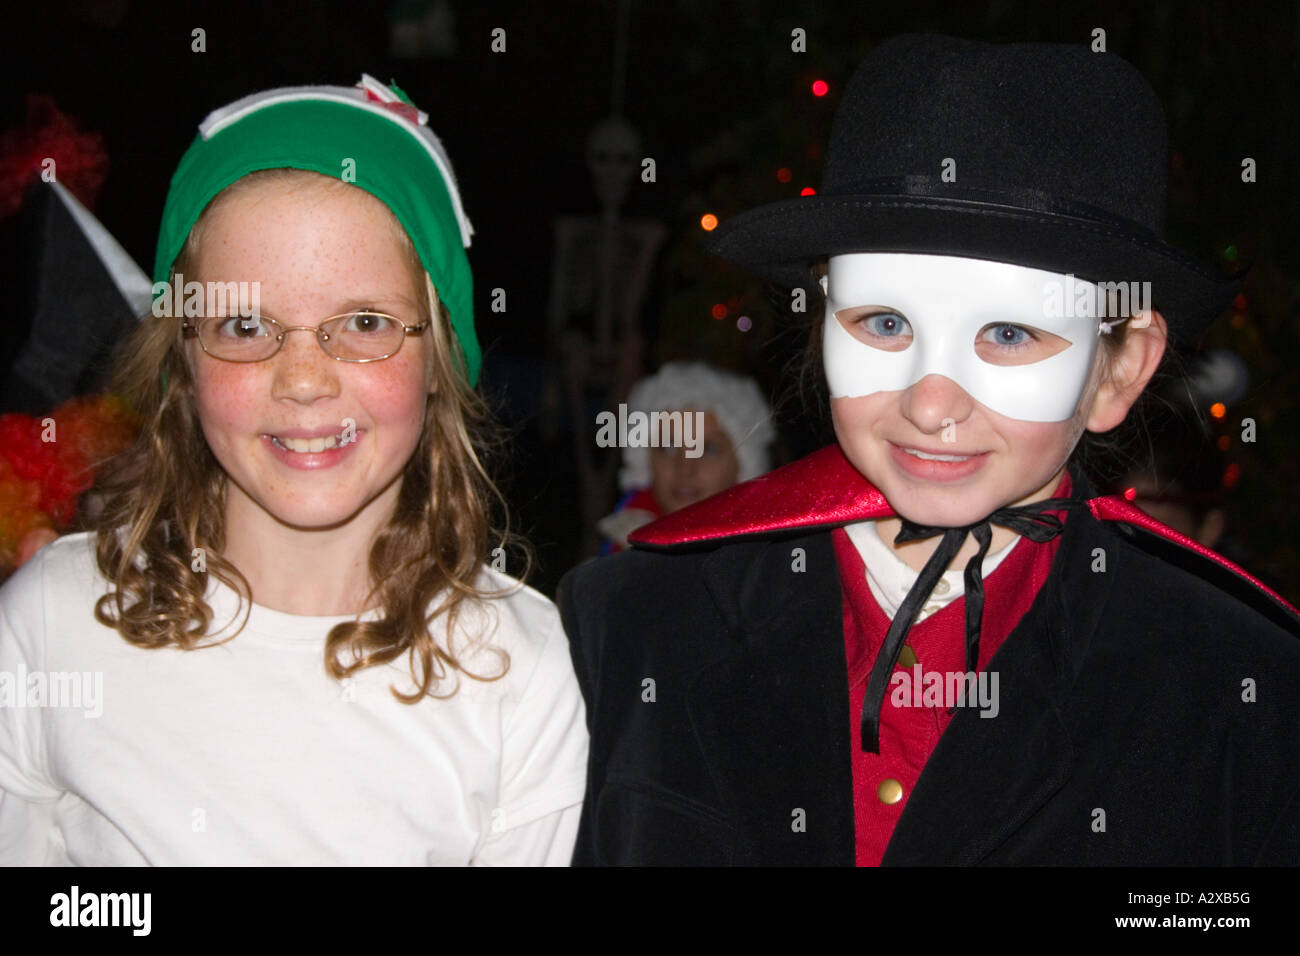 Halloween trick or treaters in masked Zoro character and sister in white angle costume age 6. St Paul Minnesota - Stock Image